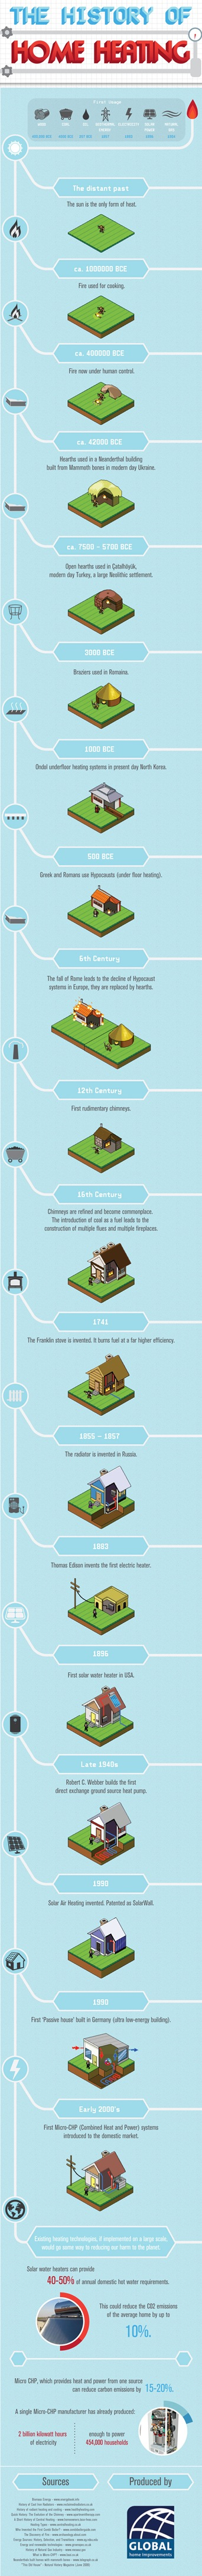 the-history-of-home-heating-infographic_510d0a5931659